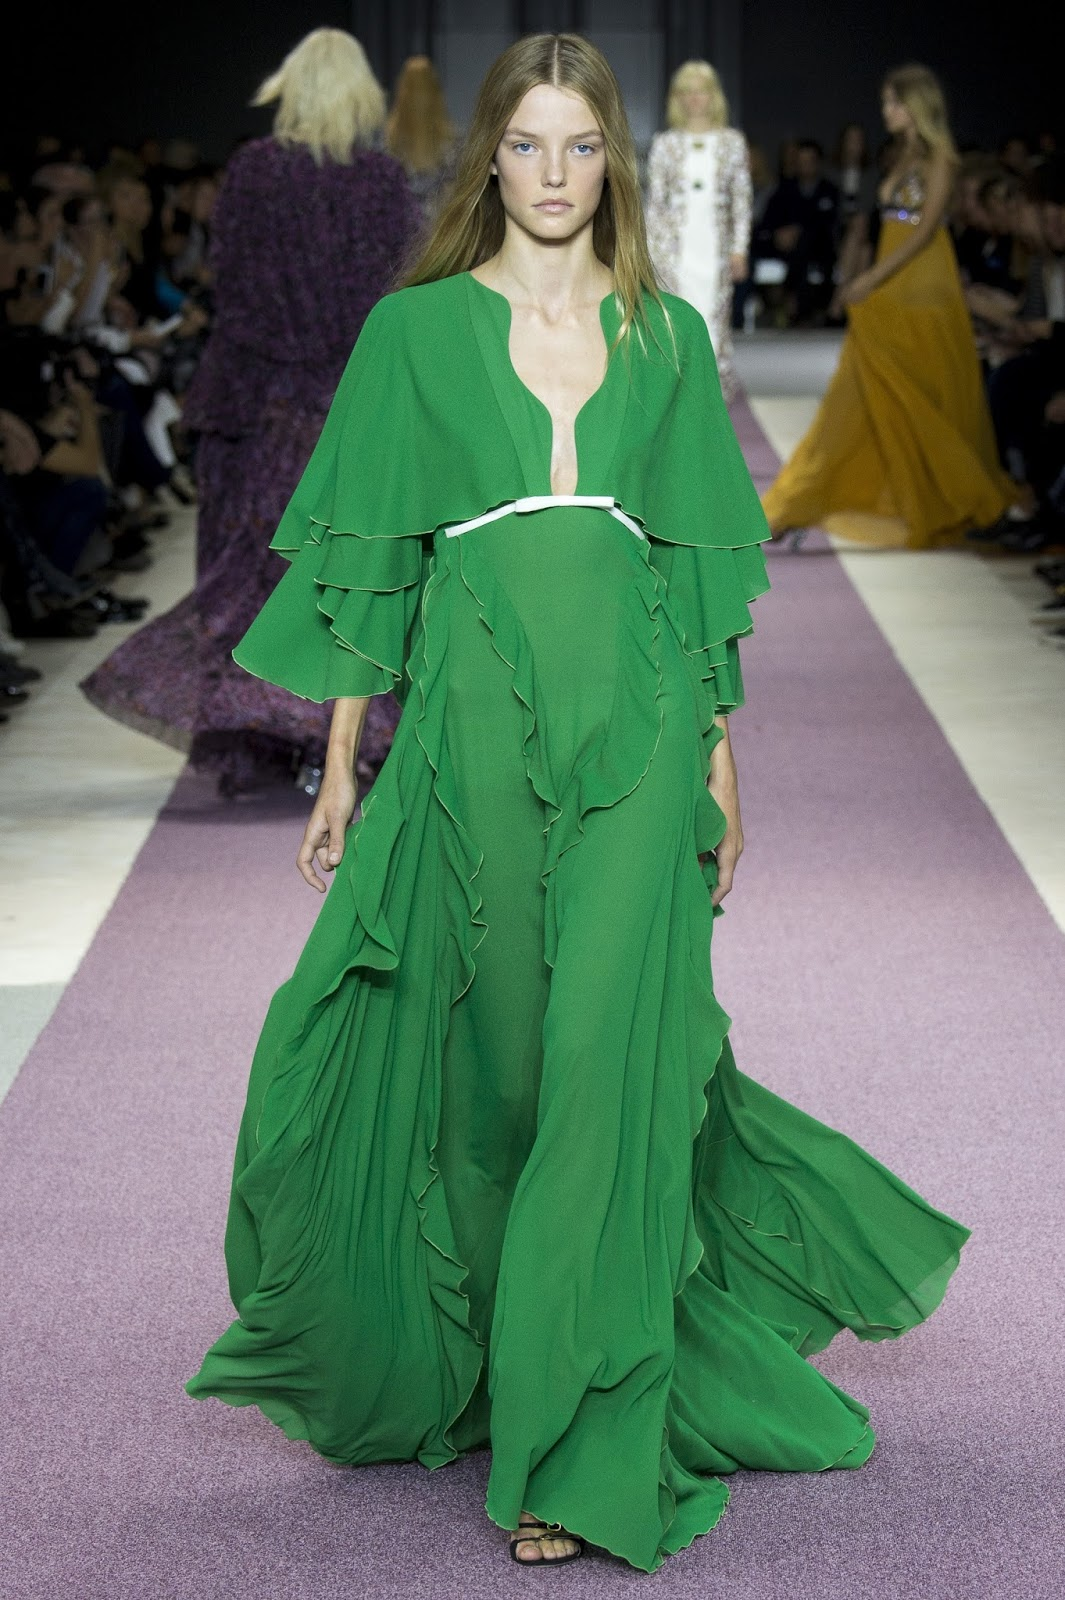 Pantone colour report & spring summer 2016 fashion trends / green flash at Giambattista Valli Spring/Sumemr 2016 via www.fashionedbylove.co.uk British fashion & style blog